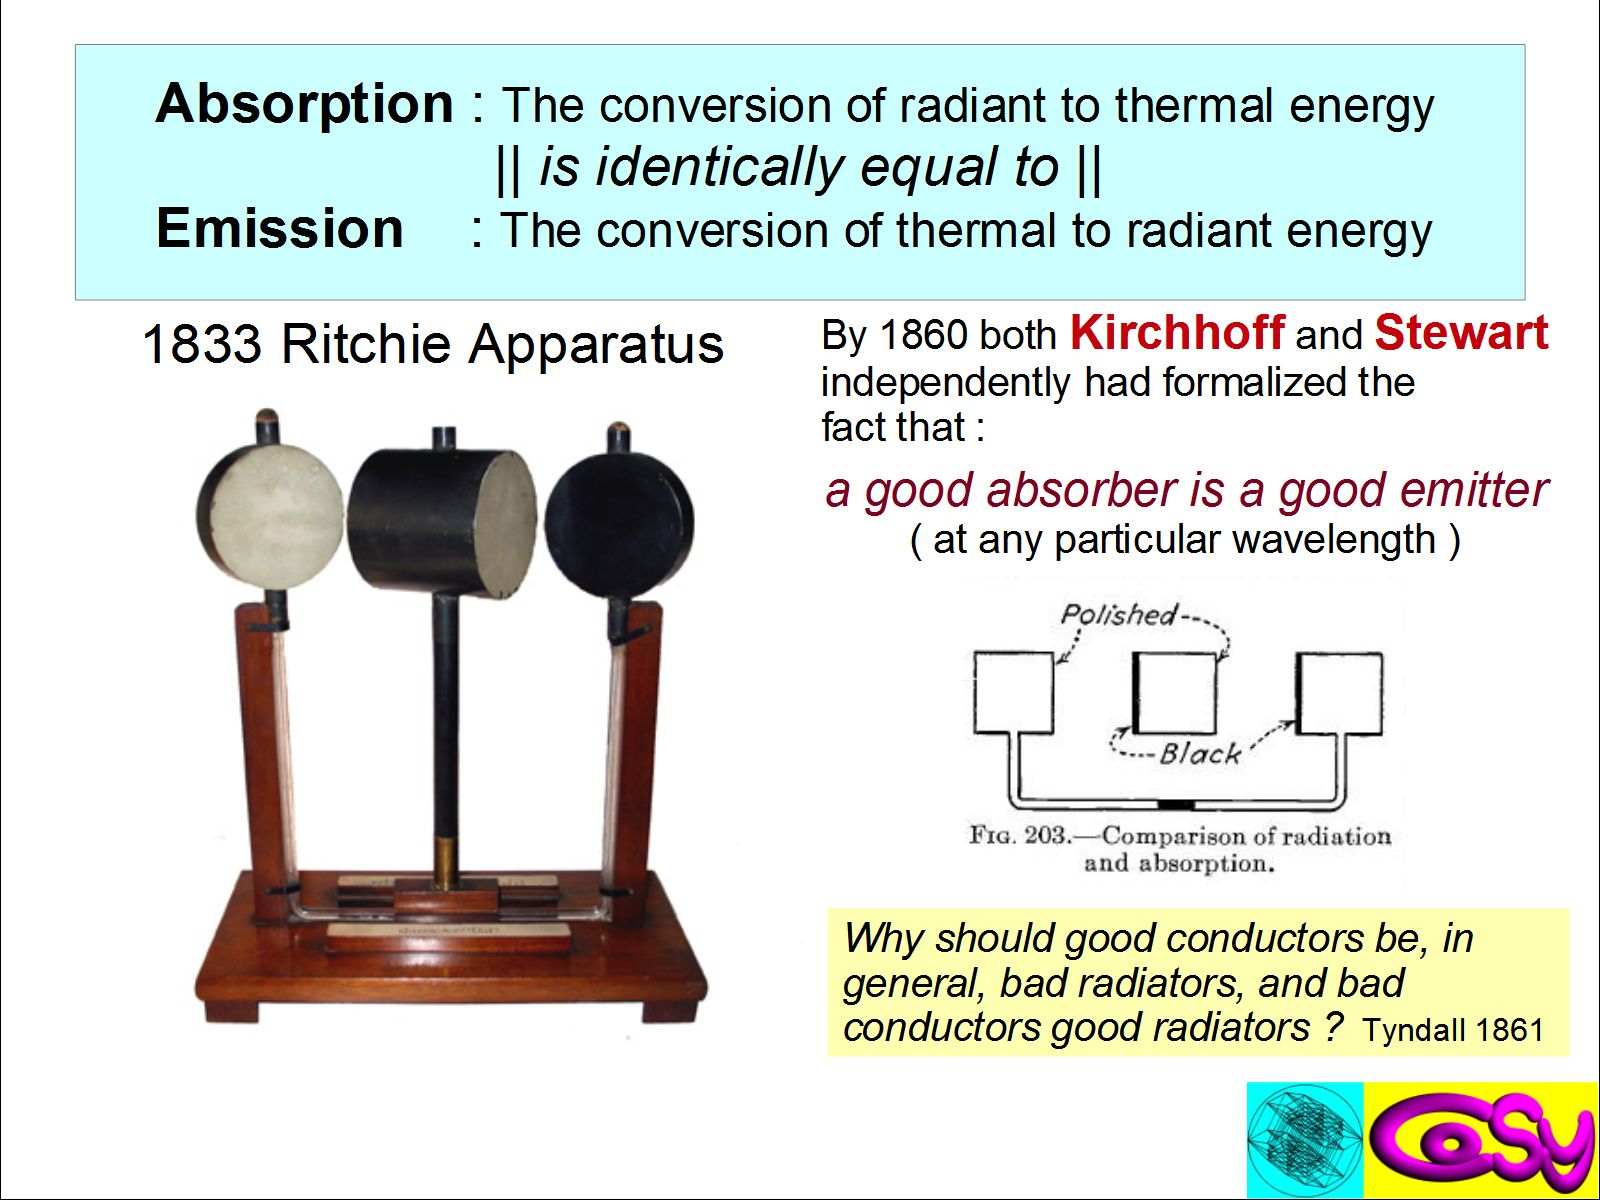 The Greenhouse Effect Explained In Simple Terms Science Of Doom Series And Parallel Circuits A Water Analogy Youtube Any Case Thats Reason To Replicate Experiment Get Lots Traffic That Apparatus Pictured Was Standard Physics Demonstration